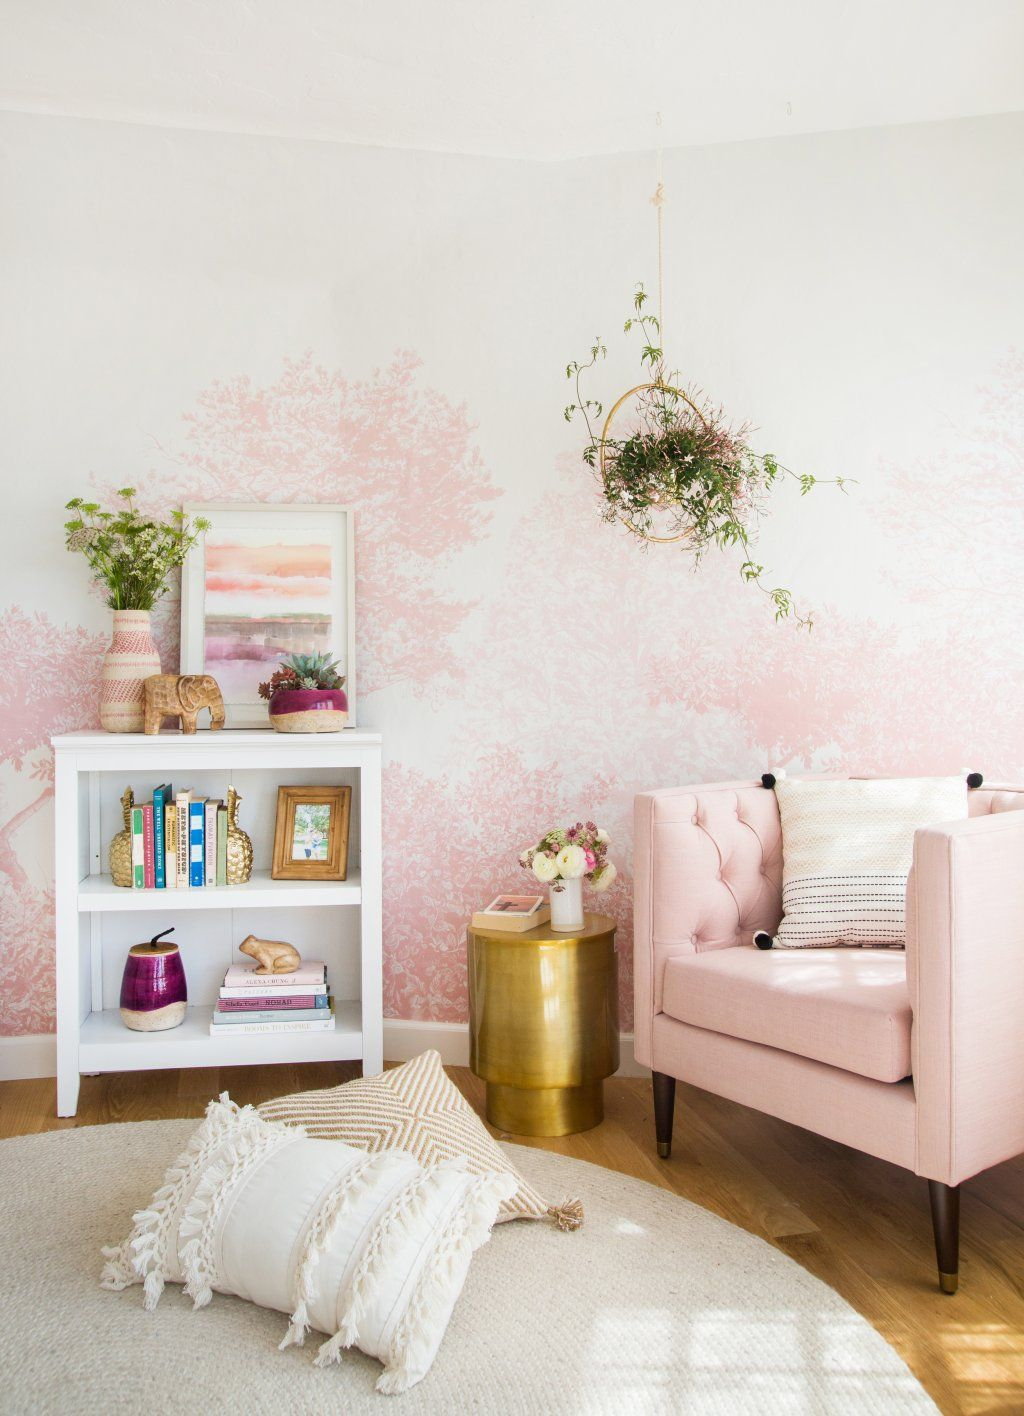 Wall decor for teen bedroom pink on the walls and hanging plants  hogar  pinterest  hanging